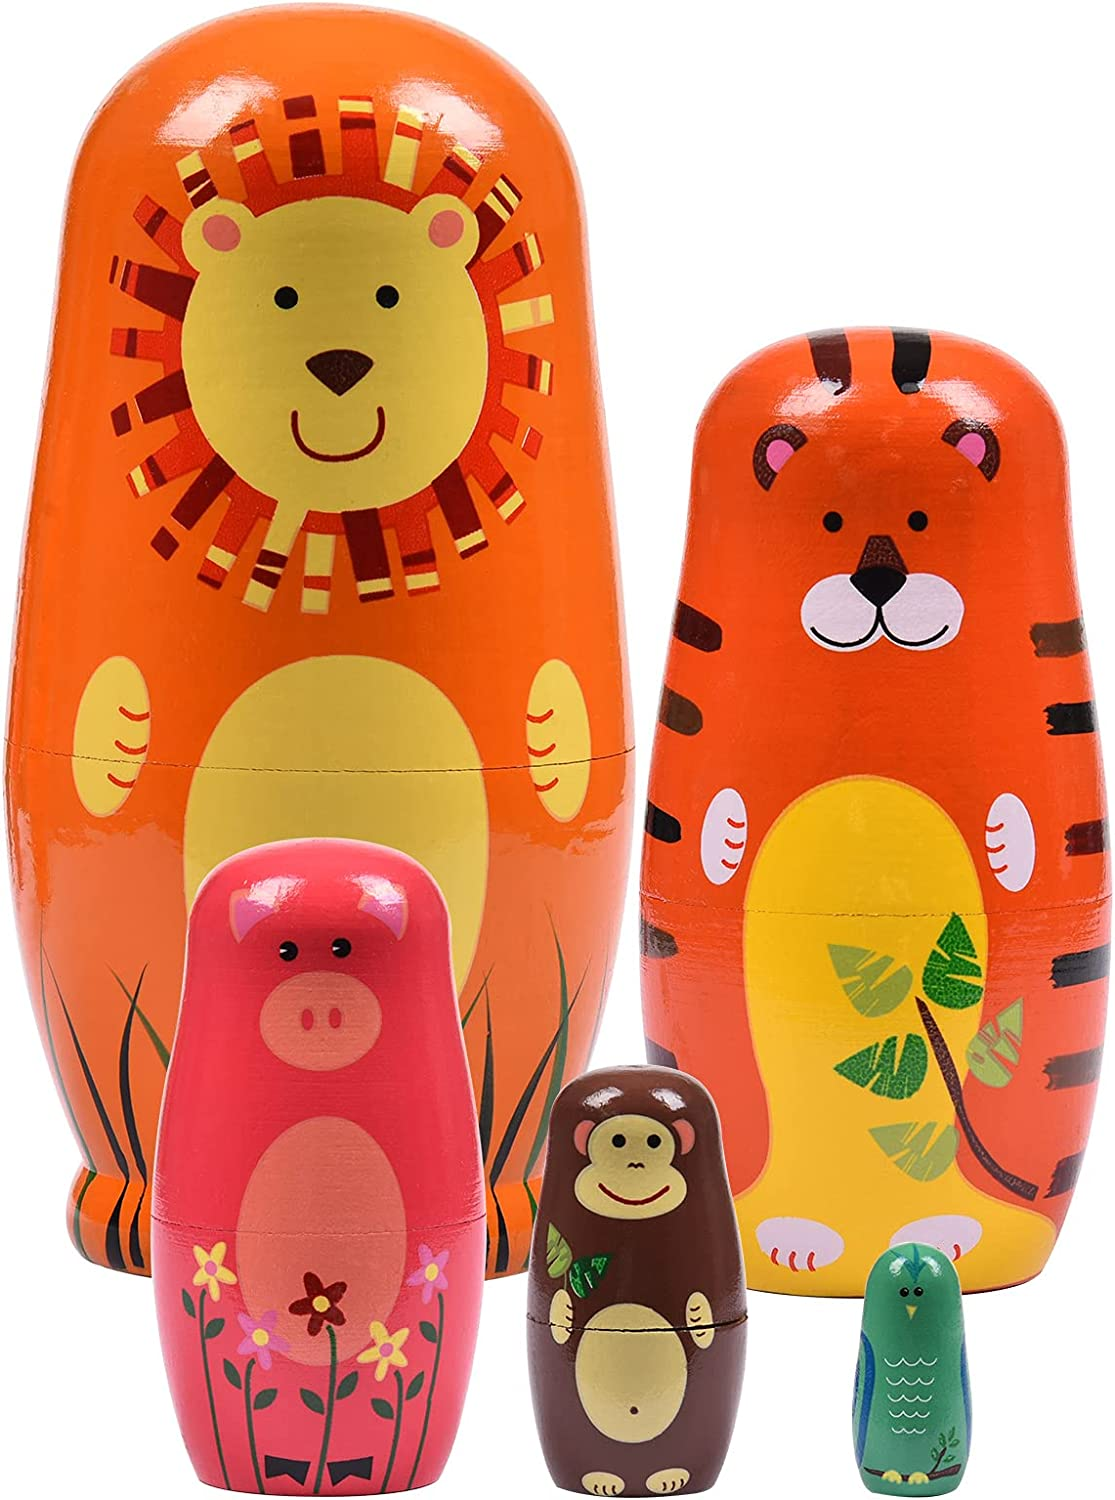 Russian Nesting Dolls Wooden Gift Soldering Gifts Birthday Cash special price Boxes Handmade